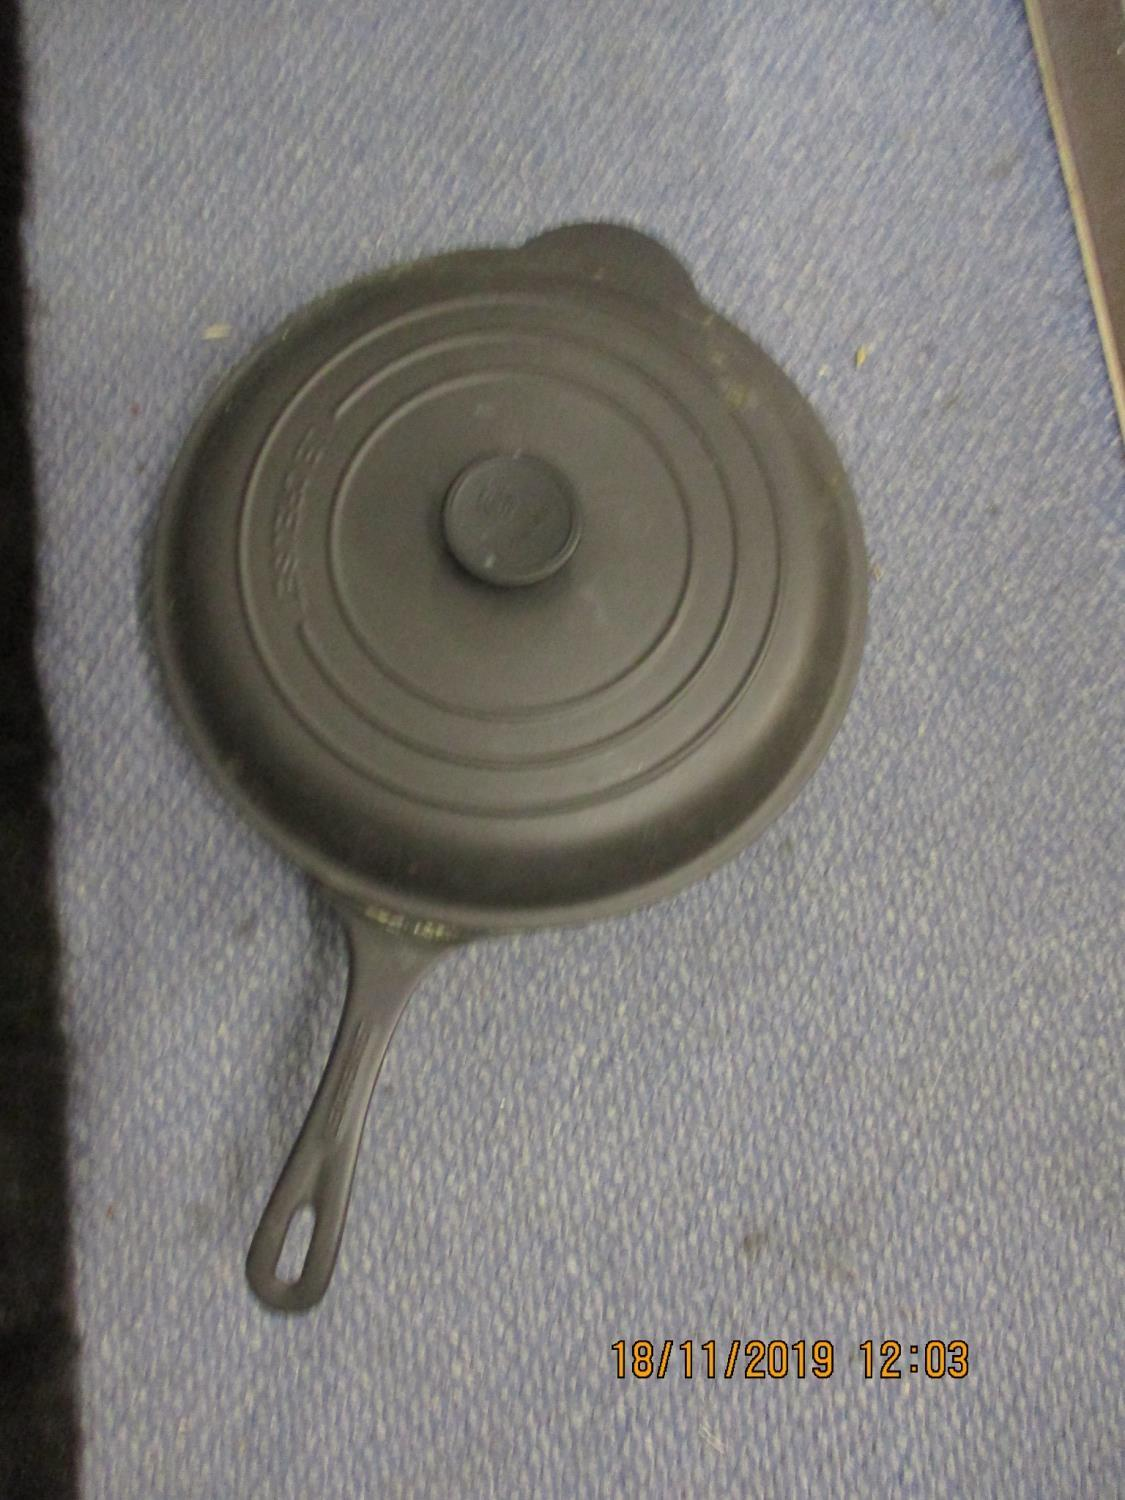 Lot 386 - Le Creuset - two red frying pans and one casserole dish, together with a black Le Creuset frying pan